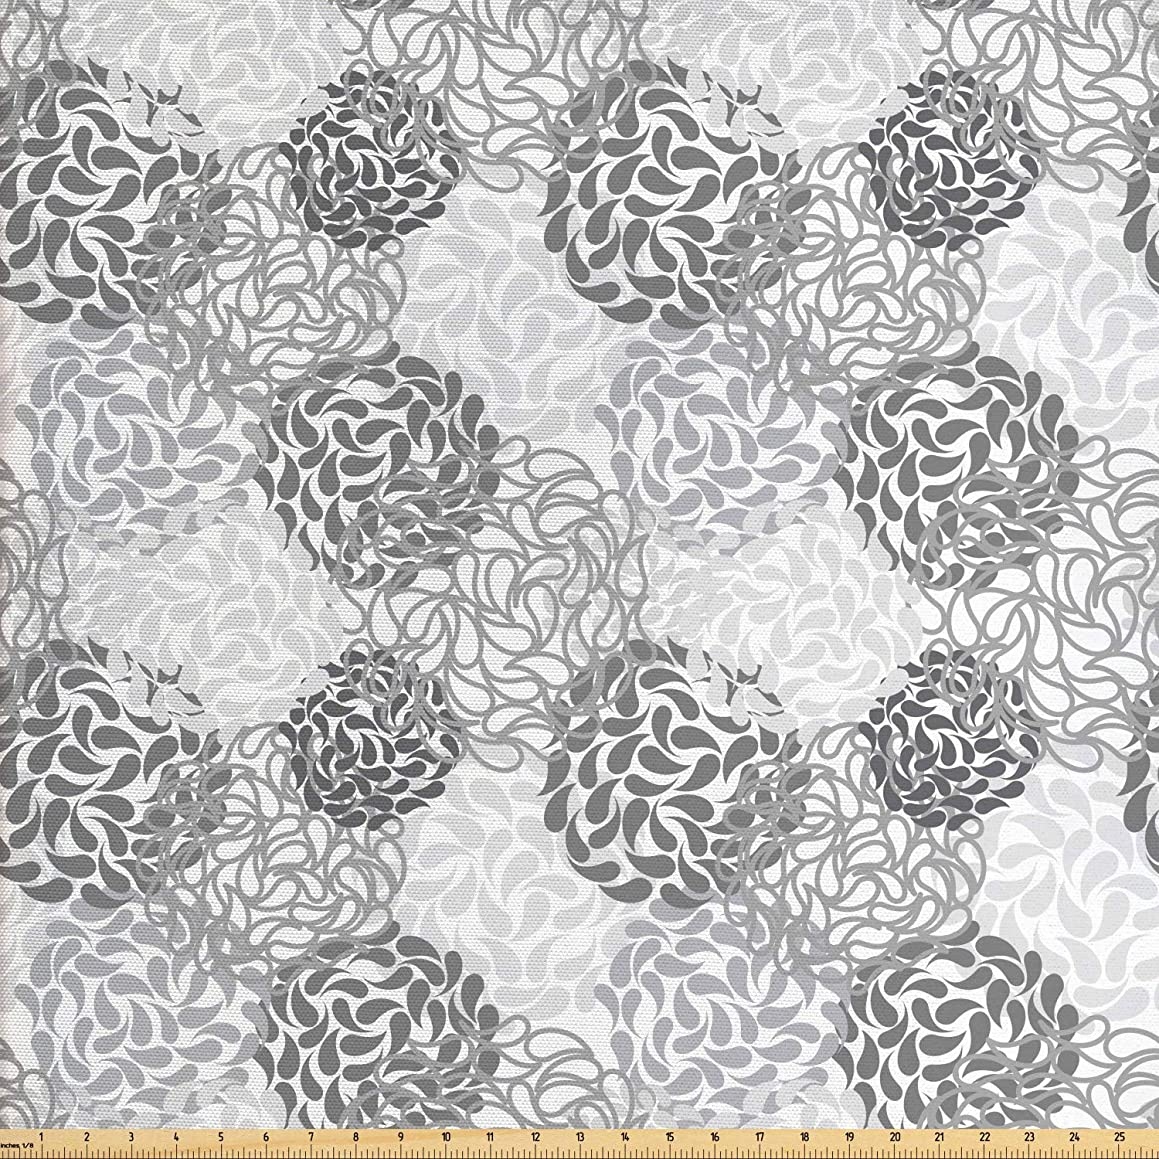 Lunarable Floral Fabric by The Yard, Mixed Florets Pattern Abstract Buds Flourishing Blooms Artistic Design, Decorative Fabric for Upholstery and Home Accents, 2 Yards, Charcoal Grey White